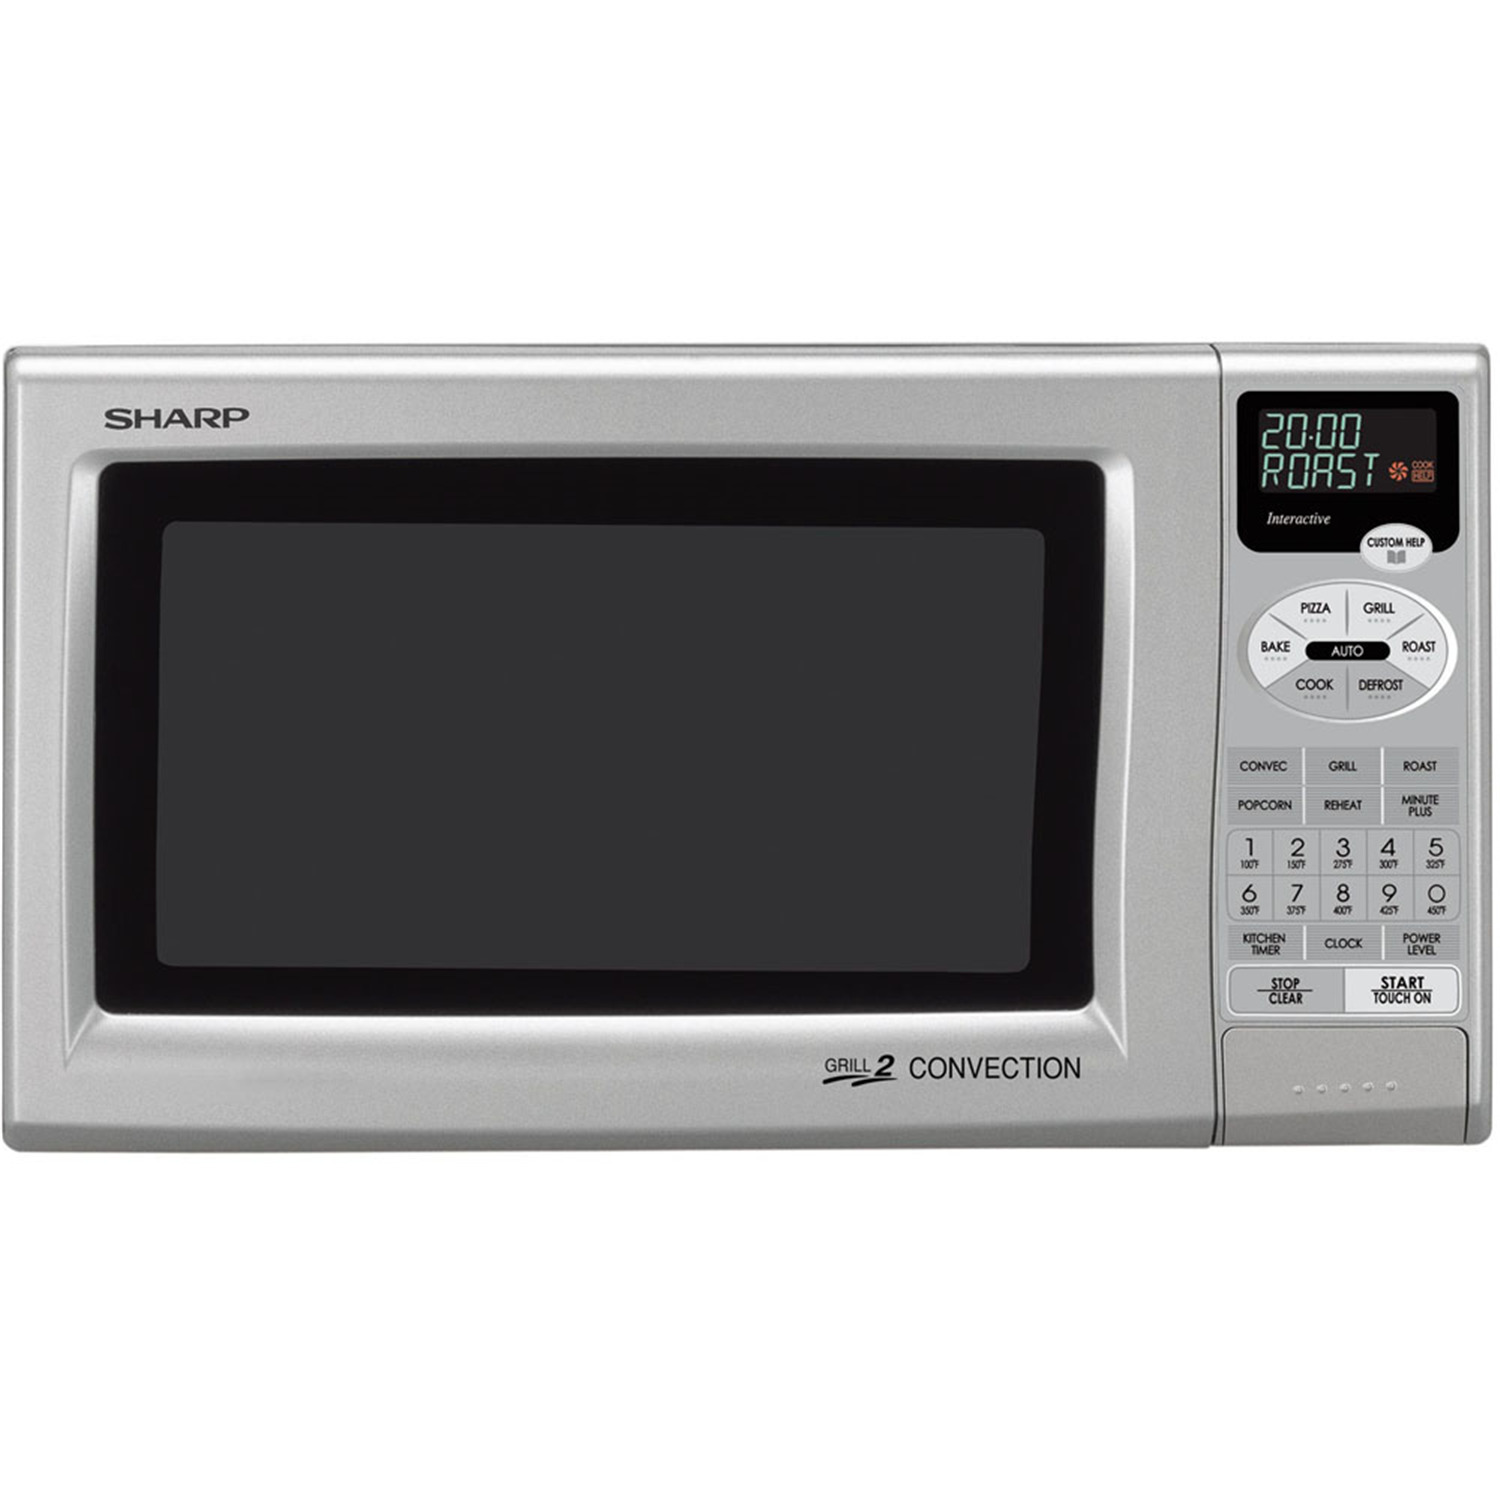 ... cu. ft. 900W Grill 2 Compact Countertop Convection Microwave Oven